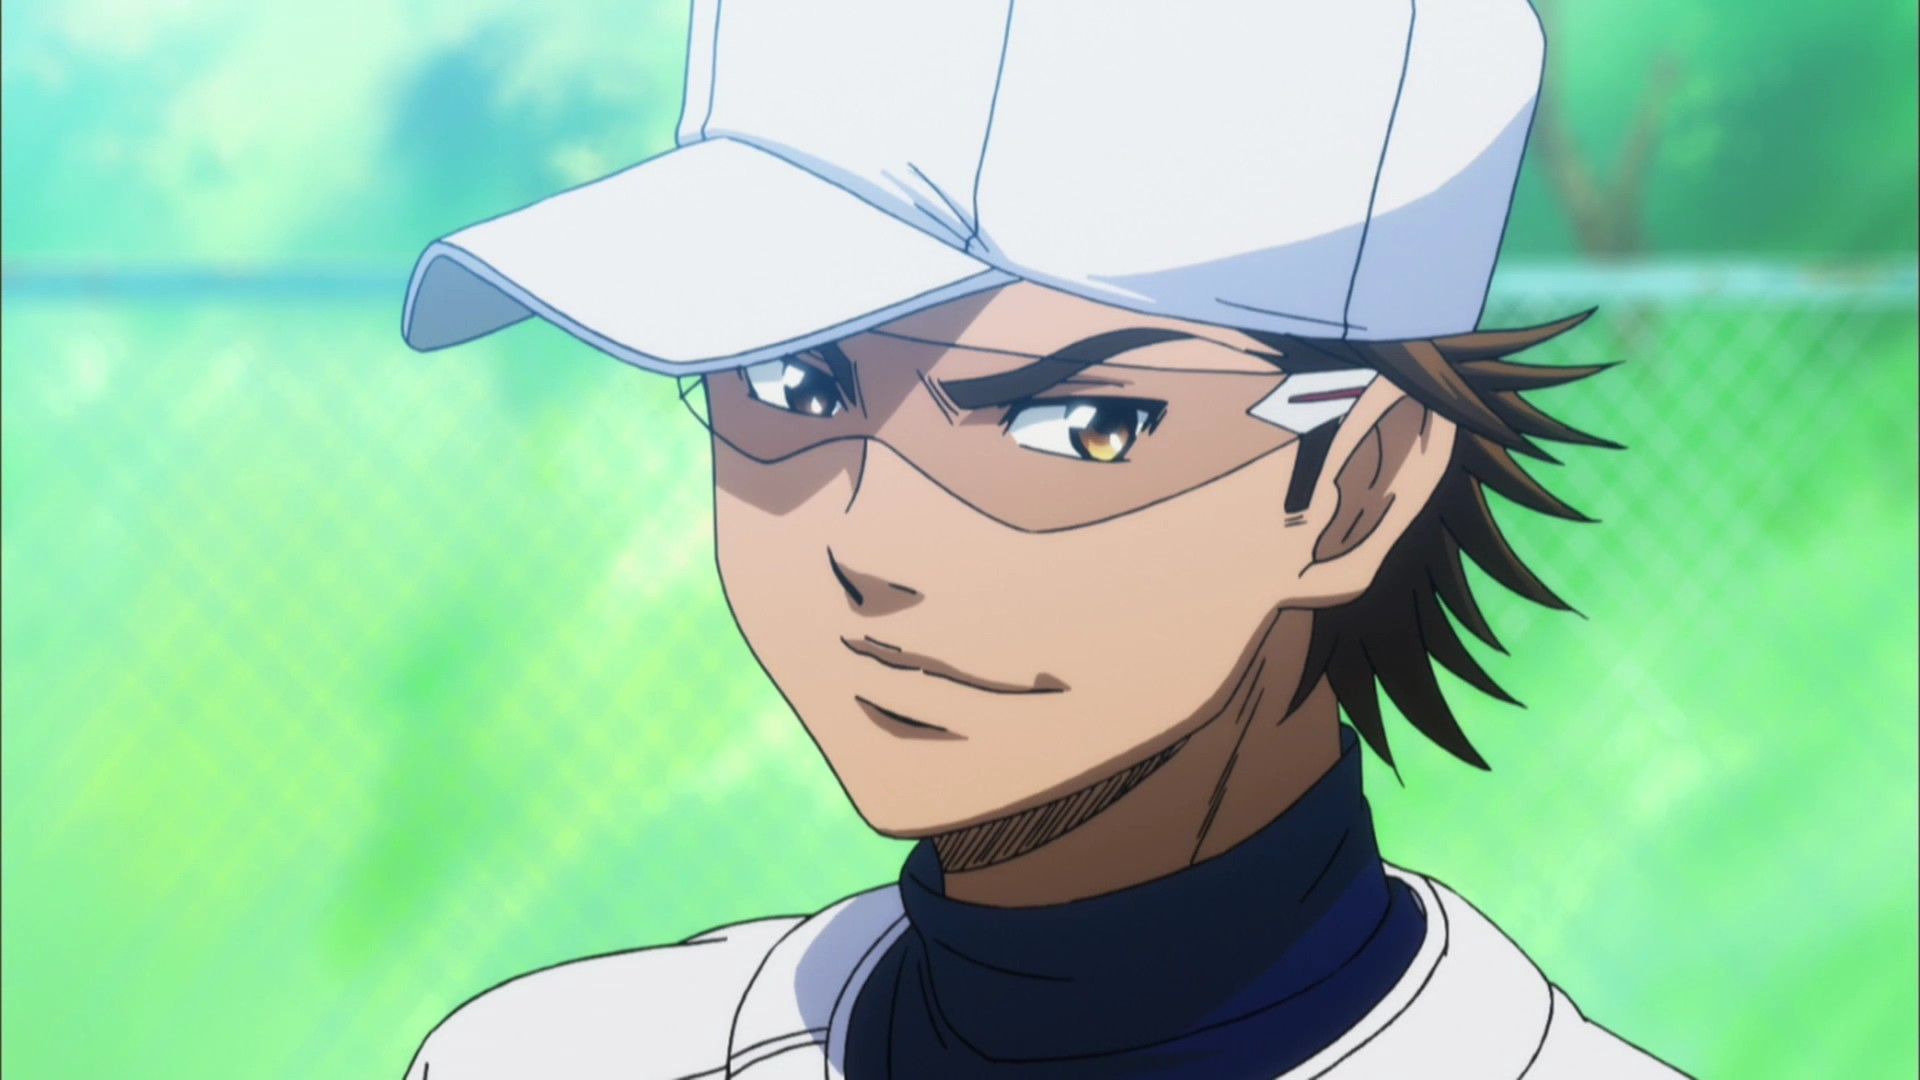 Free Download Displaying 16 Images For Ace Of Diamond Anime